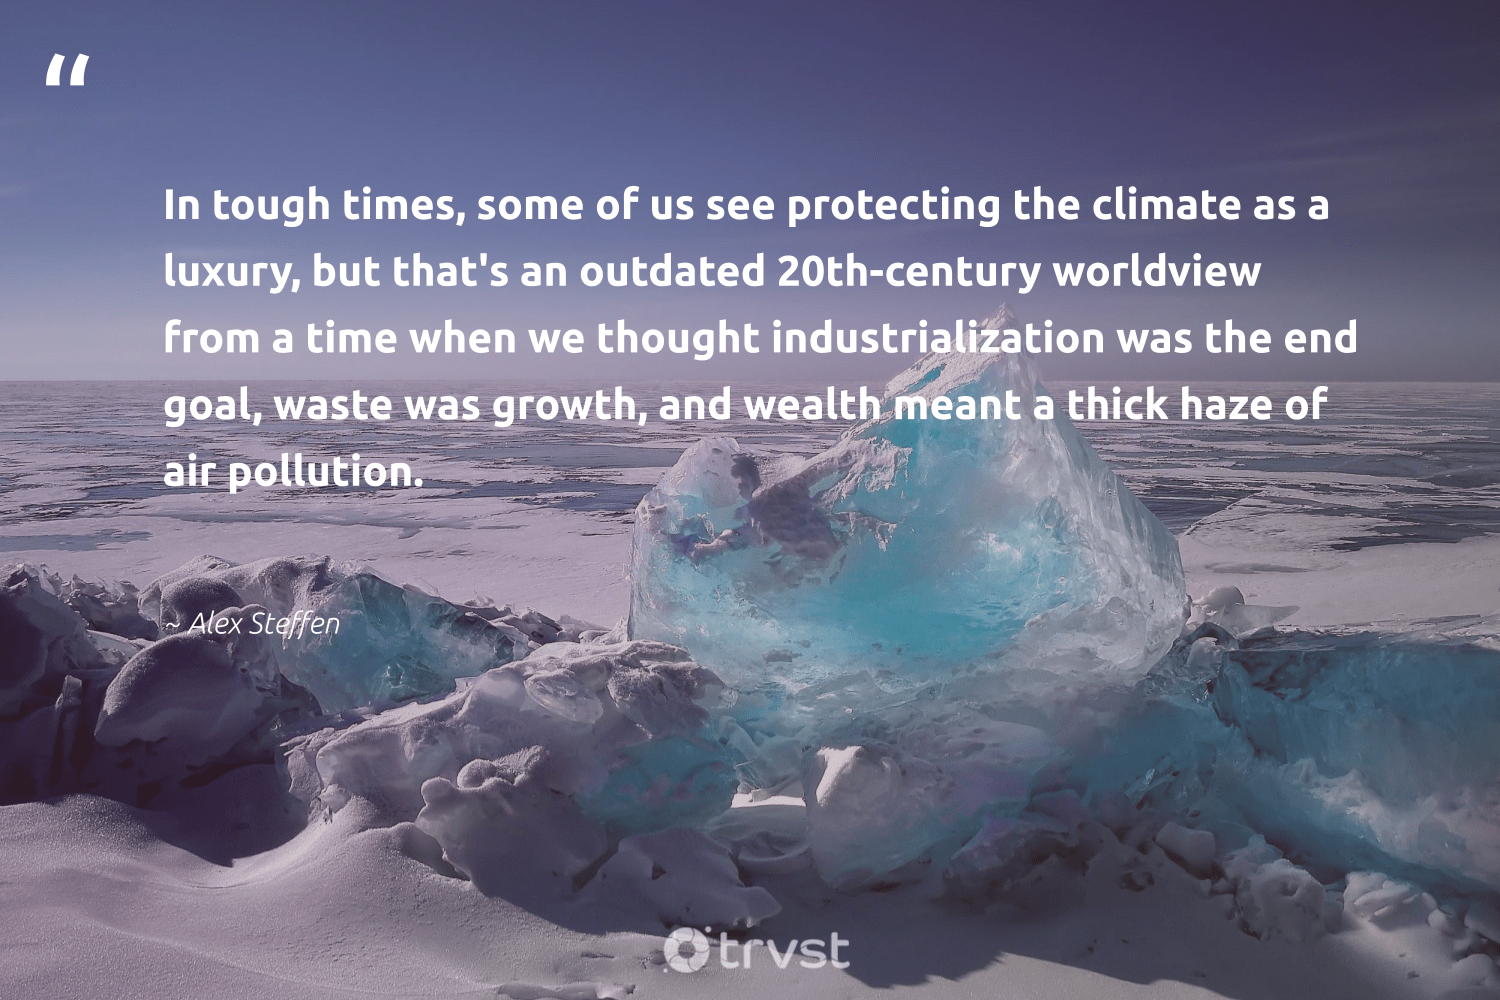 """""""In tough times, some of us see protecting the climate as a luxury, but that's an outdated 20th-century worldview from a time when we thought industrialization was the end goal, waste was growth, and wealth meant a thick haze of air pollution.""""  - Alex Steffen #trvst #quotes #waste #pollution #climate #toxic #climatechangeisreal #gogreen #ecoconscious #spill #climatefight #earth"""